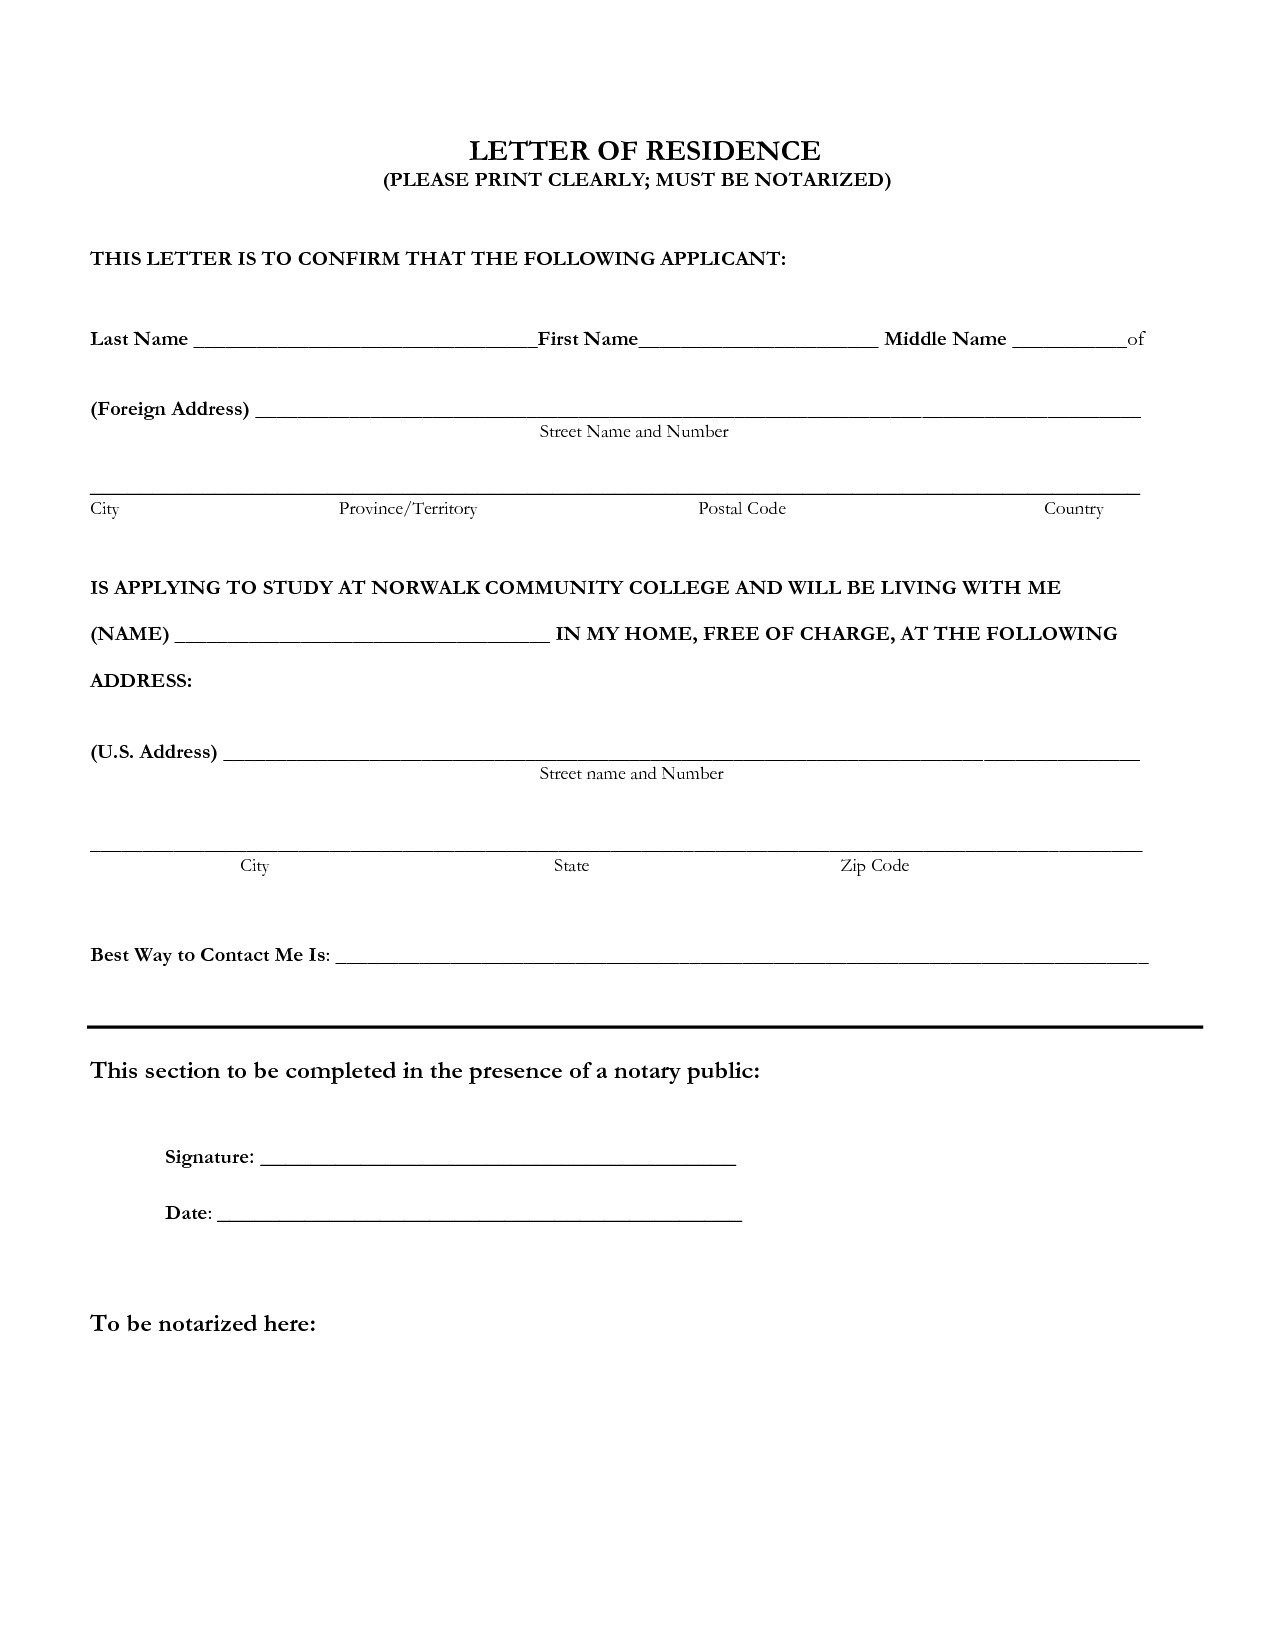 Notarized Letter Template for Residency - Notarized Certificate Employment Sample New Example Notarized